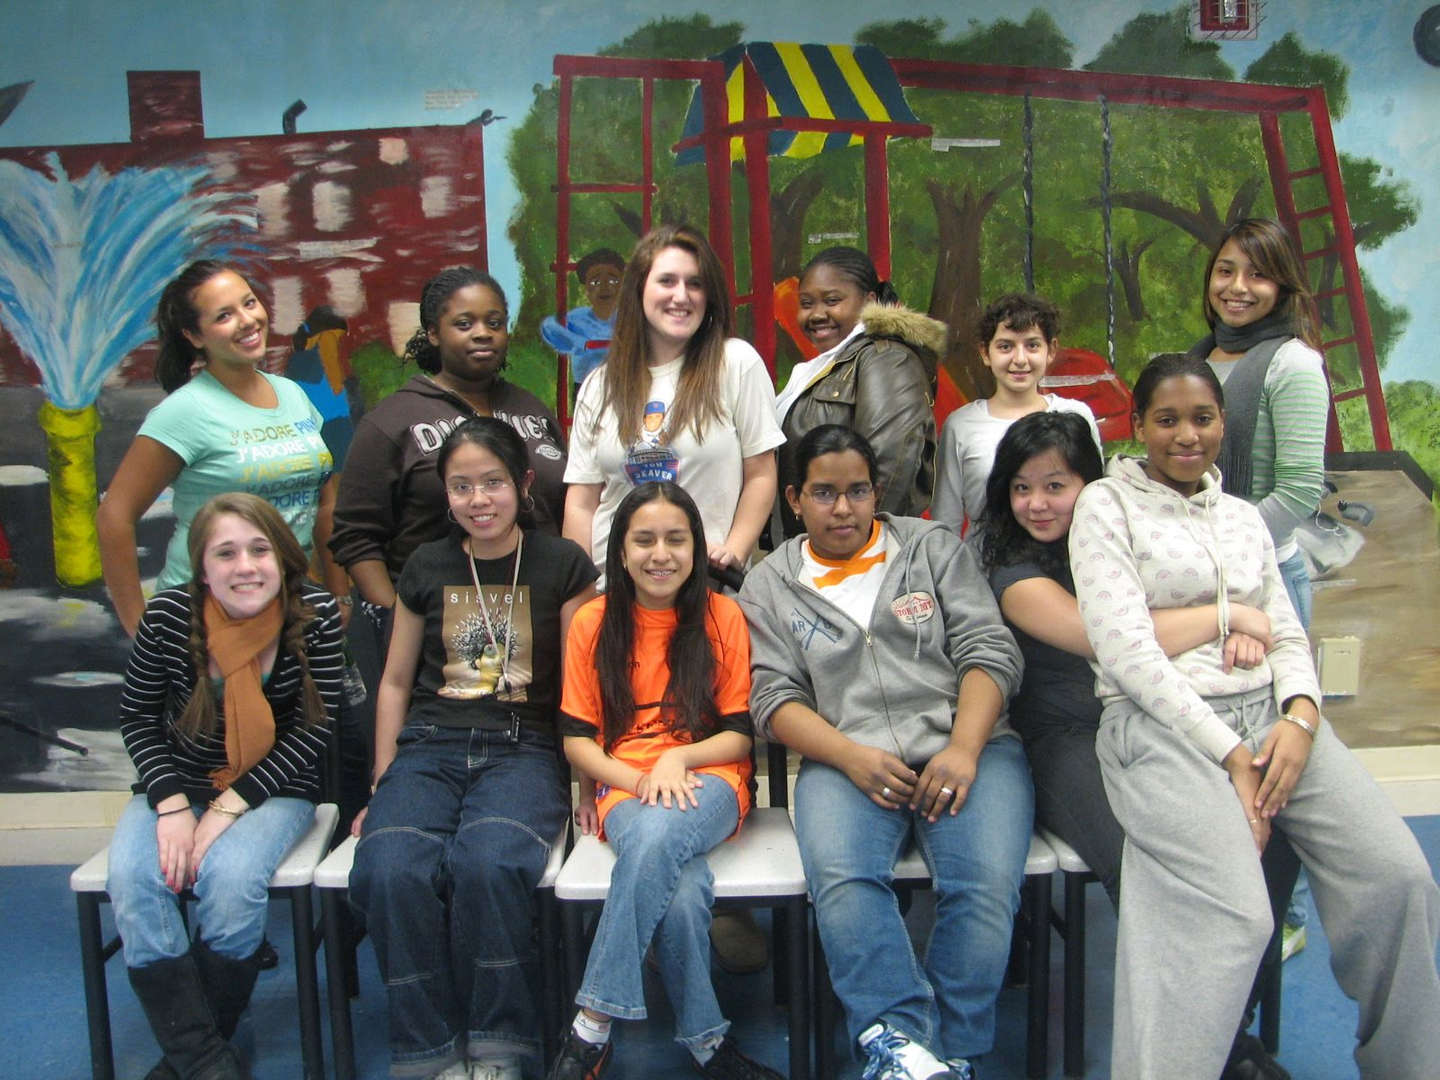 A group of students in front of a colorful set backdrop